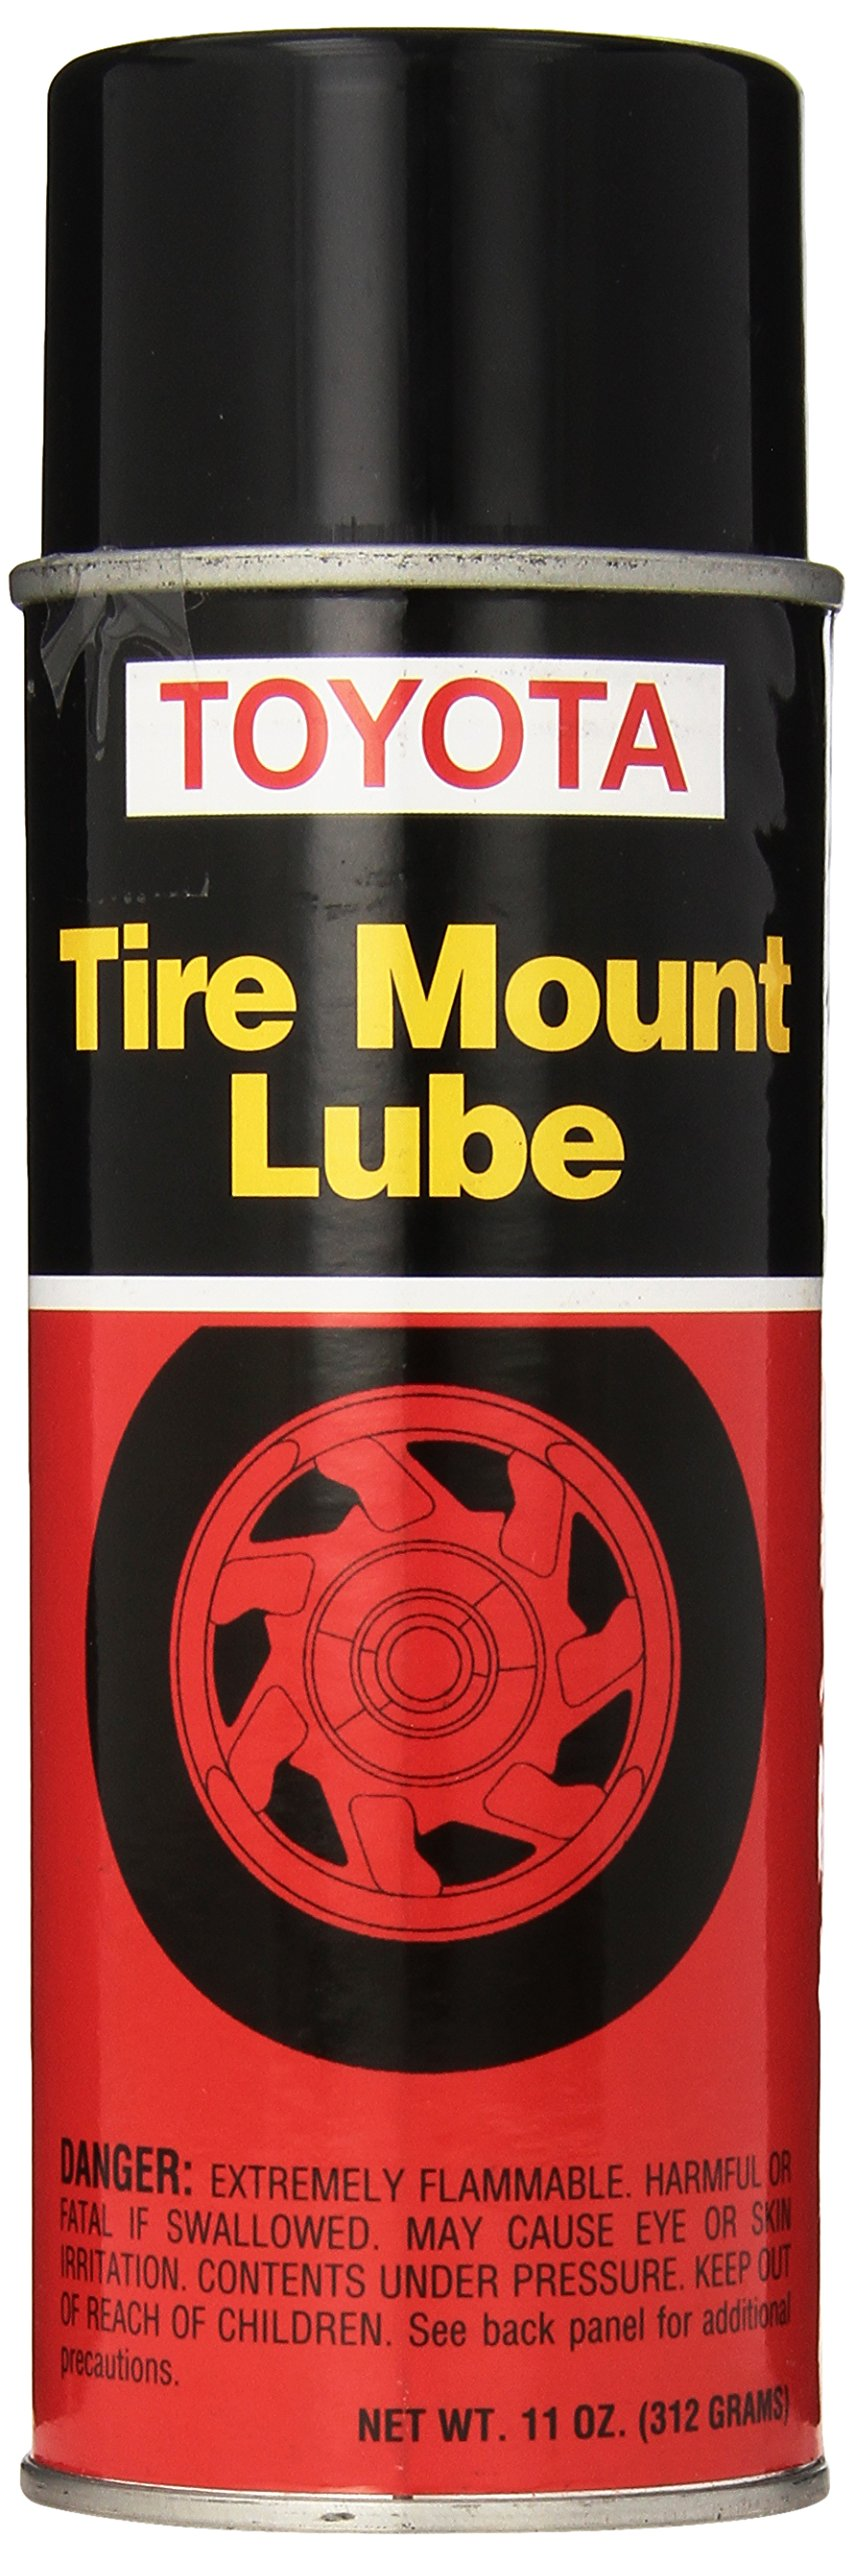 Toyota Genuine 00289-1TL00 Tire Mount Lube - 11 oz. Can